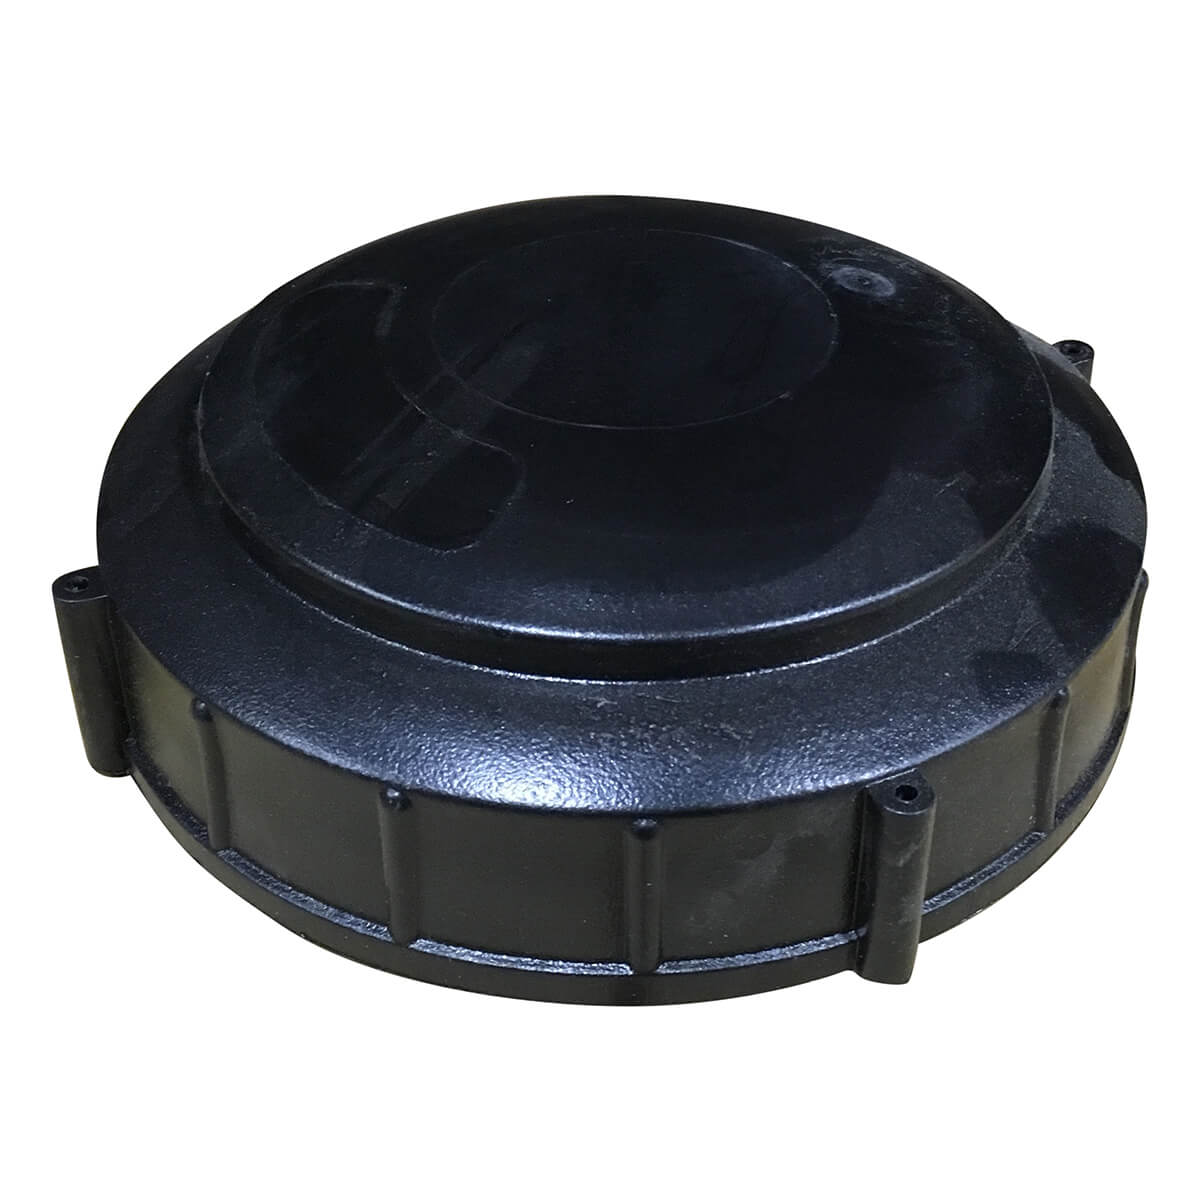 Closed Norwesco Tank Lid - 5""